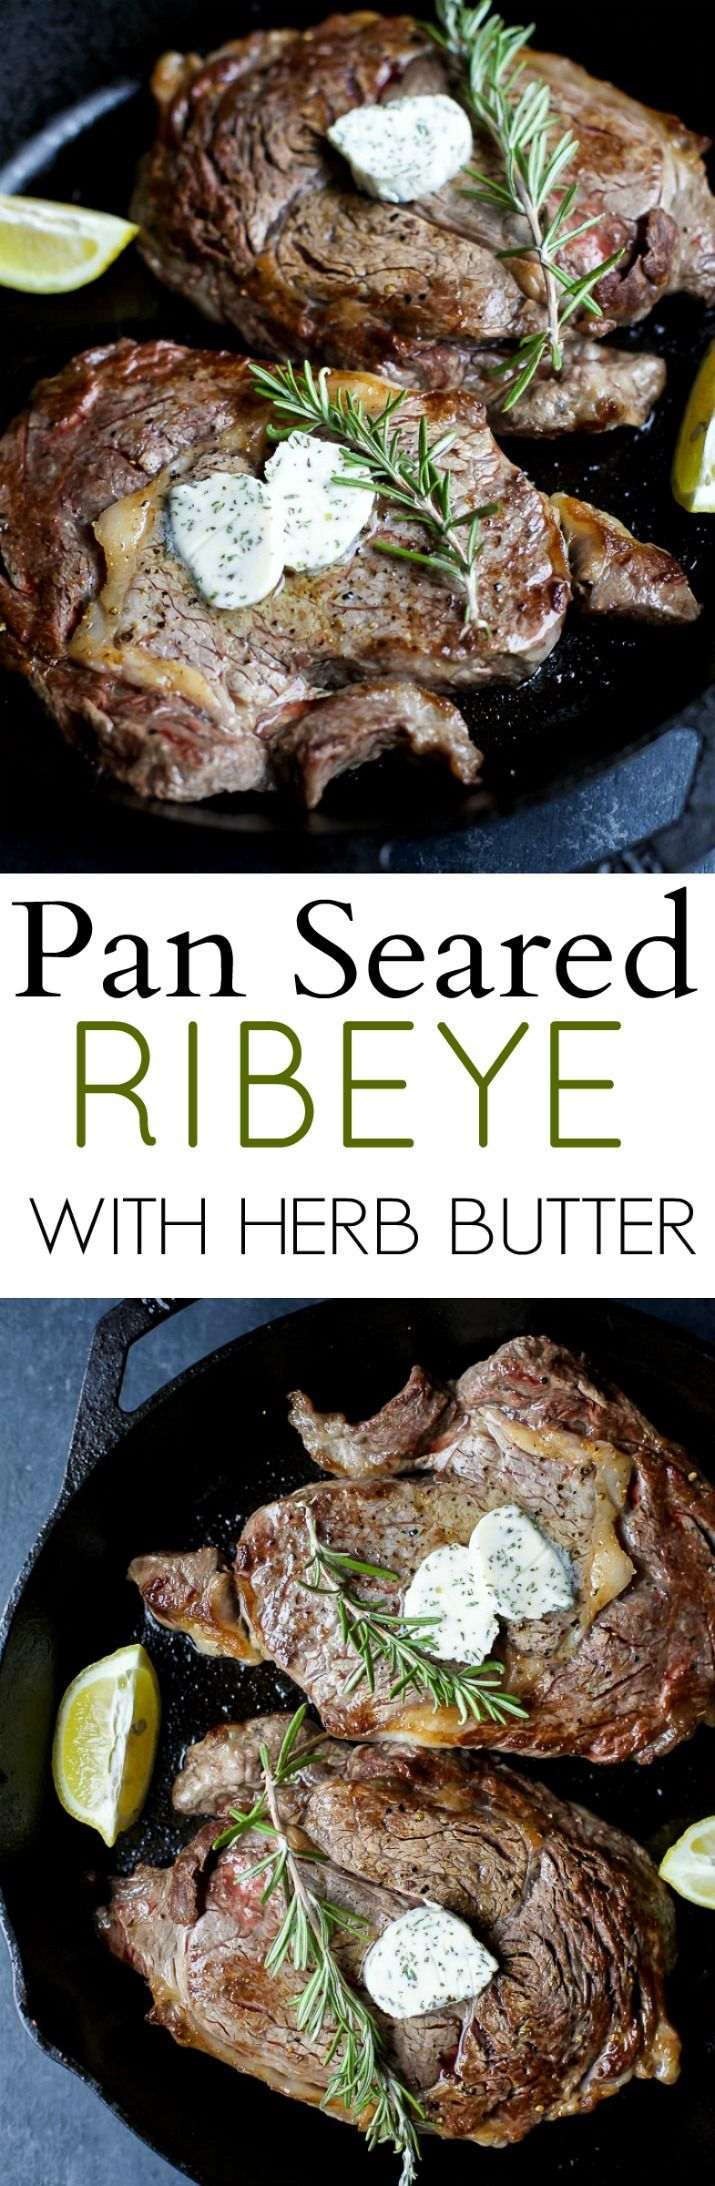 The perfect steak in just 15 minutes! Pan Seared Ribeye that's finished off in the oven and topped with homemade Herb Butter that will make you swoon! | joyfulhealthyeats.com #glutenfree (Paleo Beef Butter)